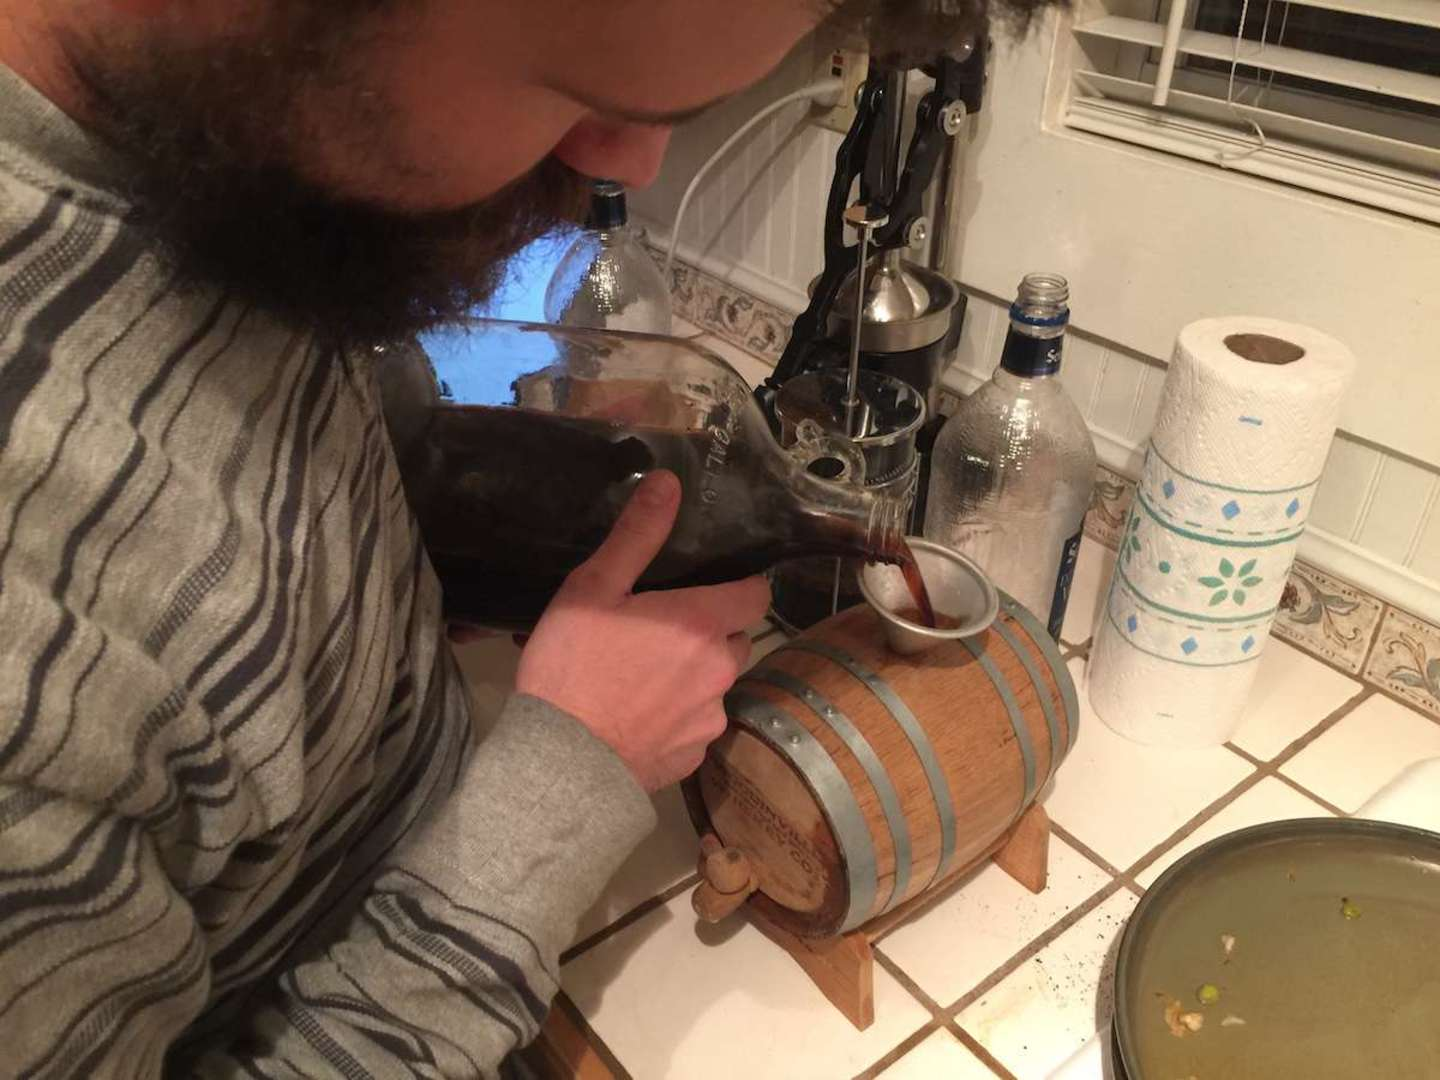 Filling an empty cask with essence liquor